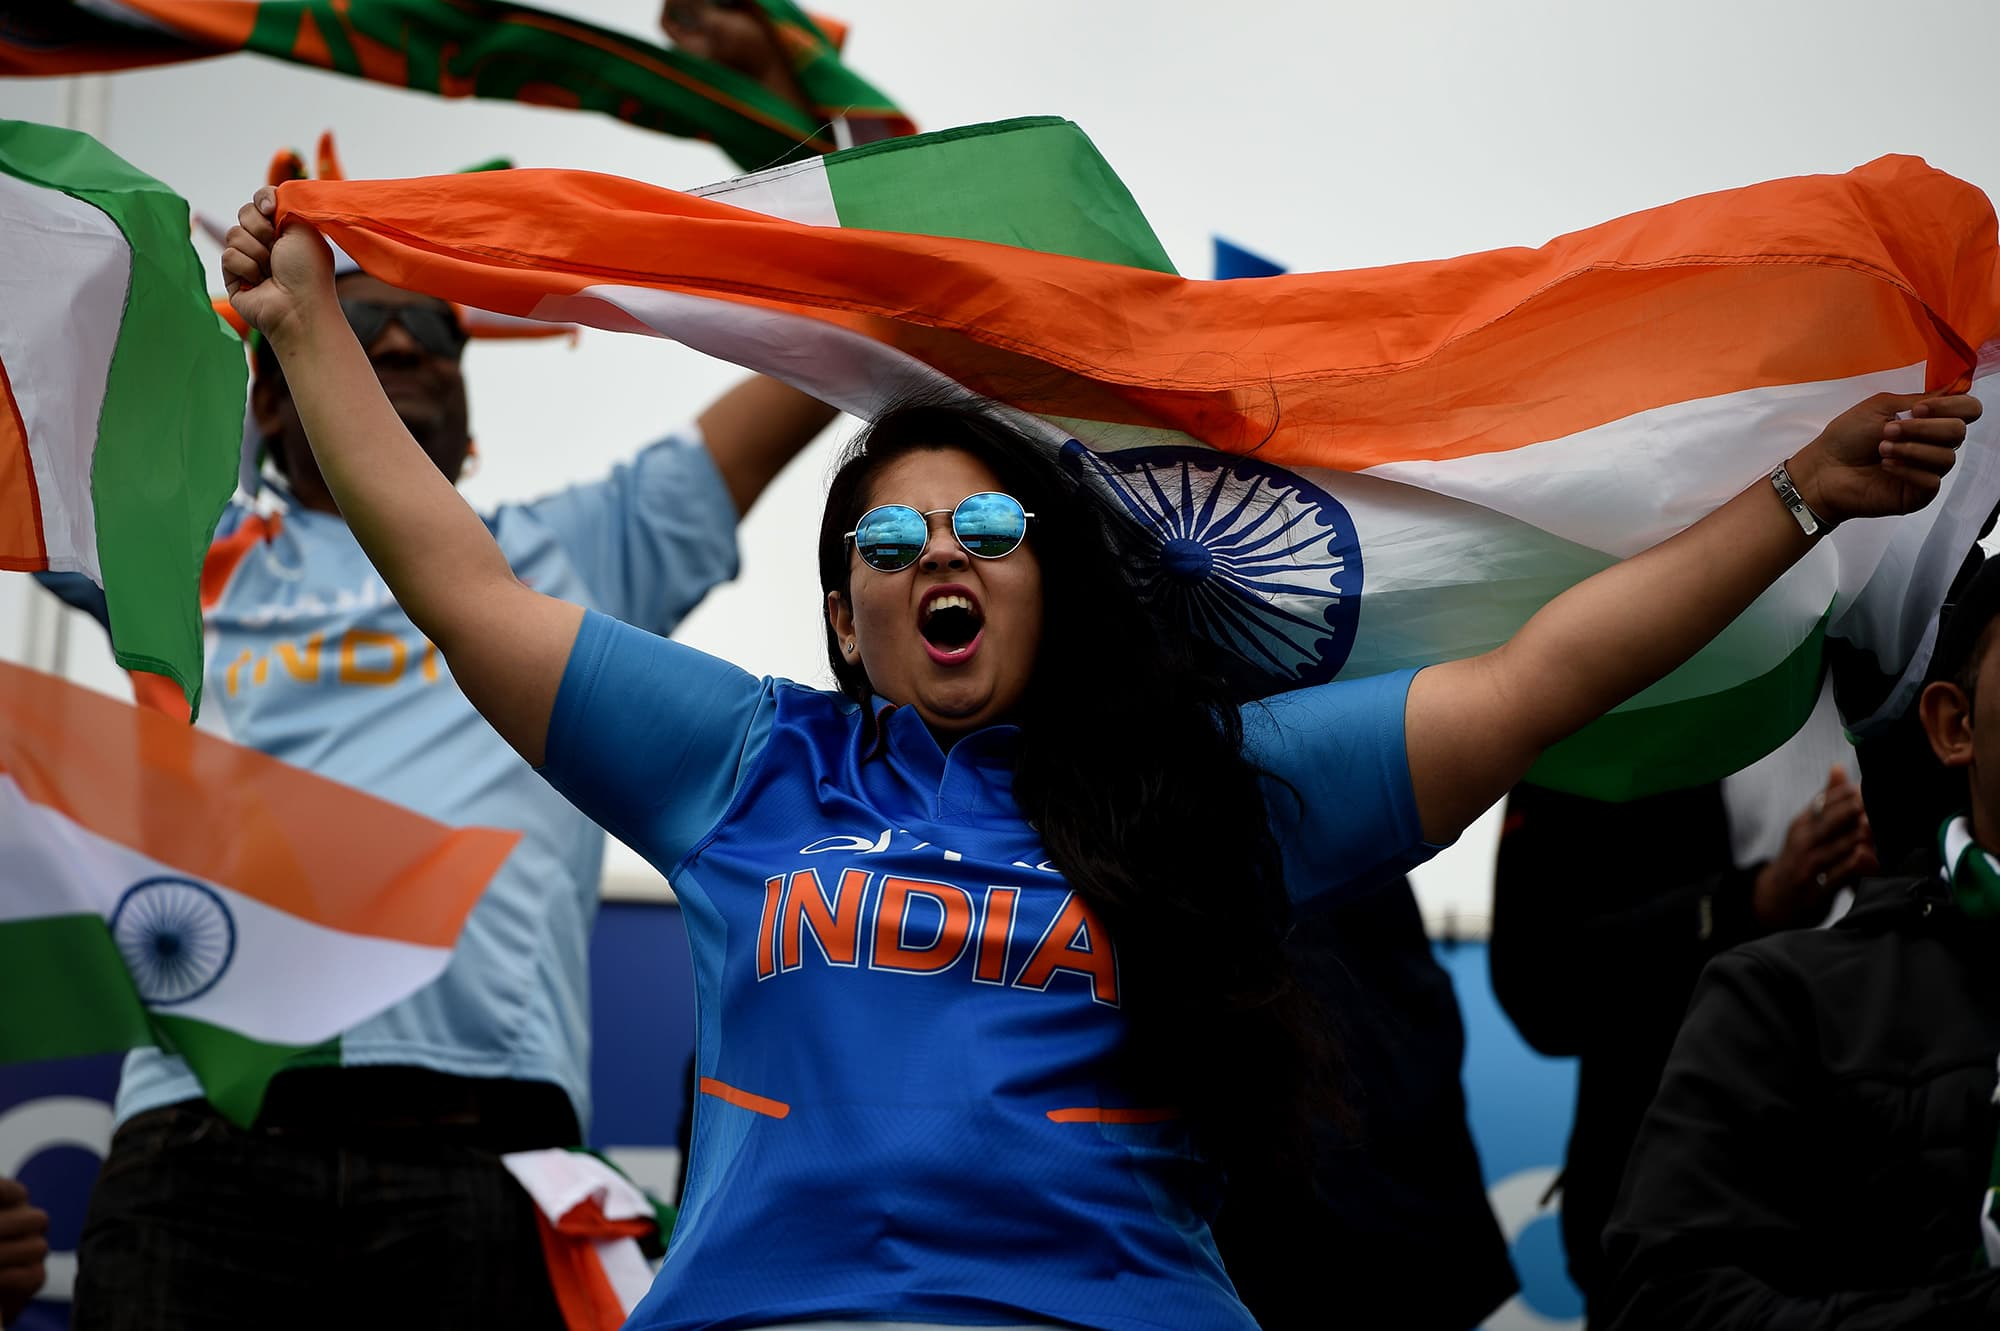 A Indian supporter waves a flag in the crowd ahead of the match. — AFP